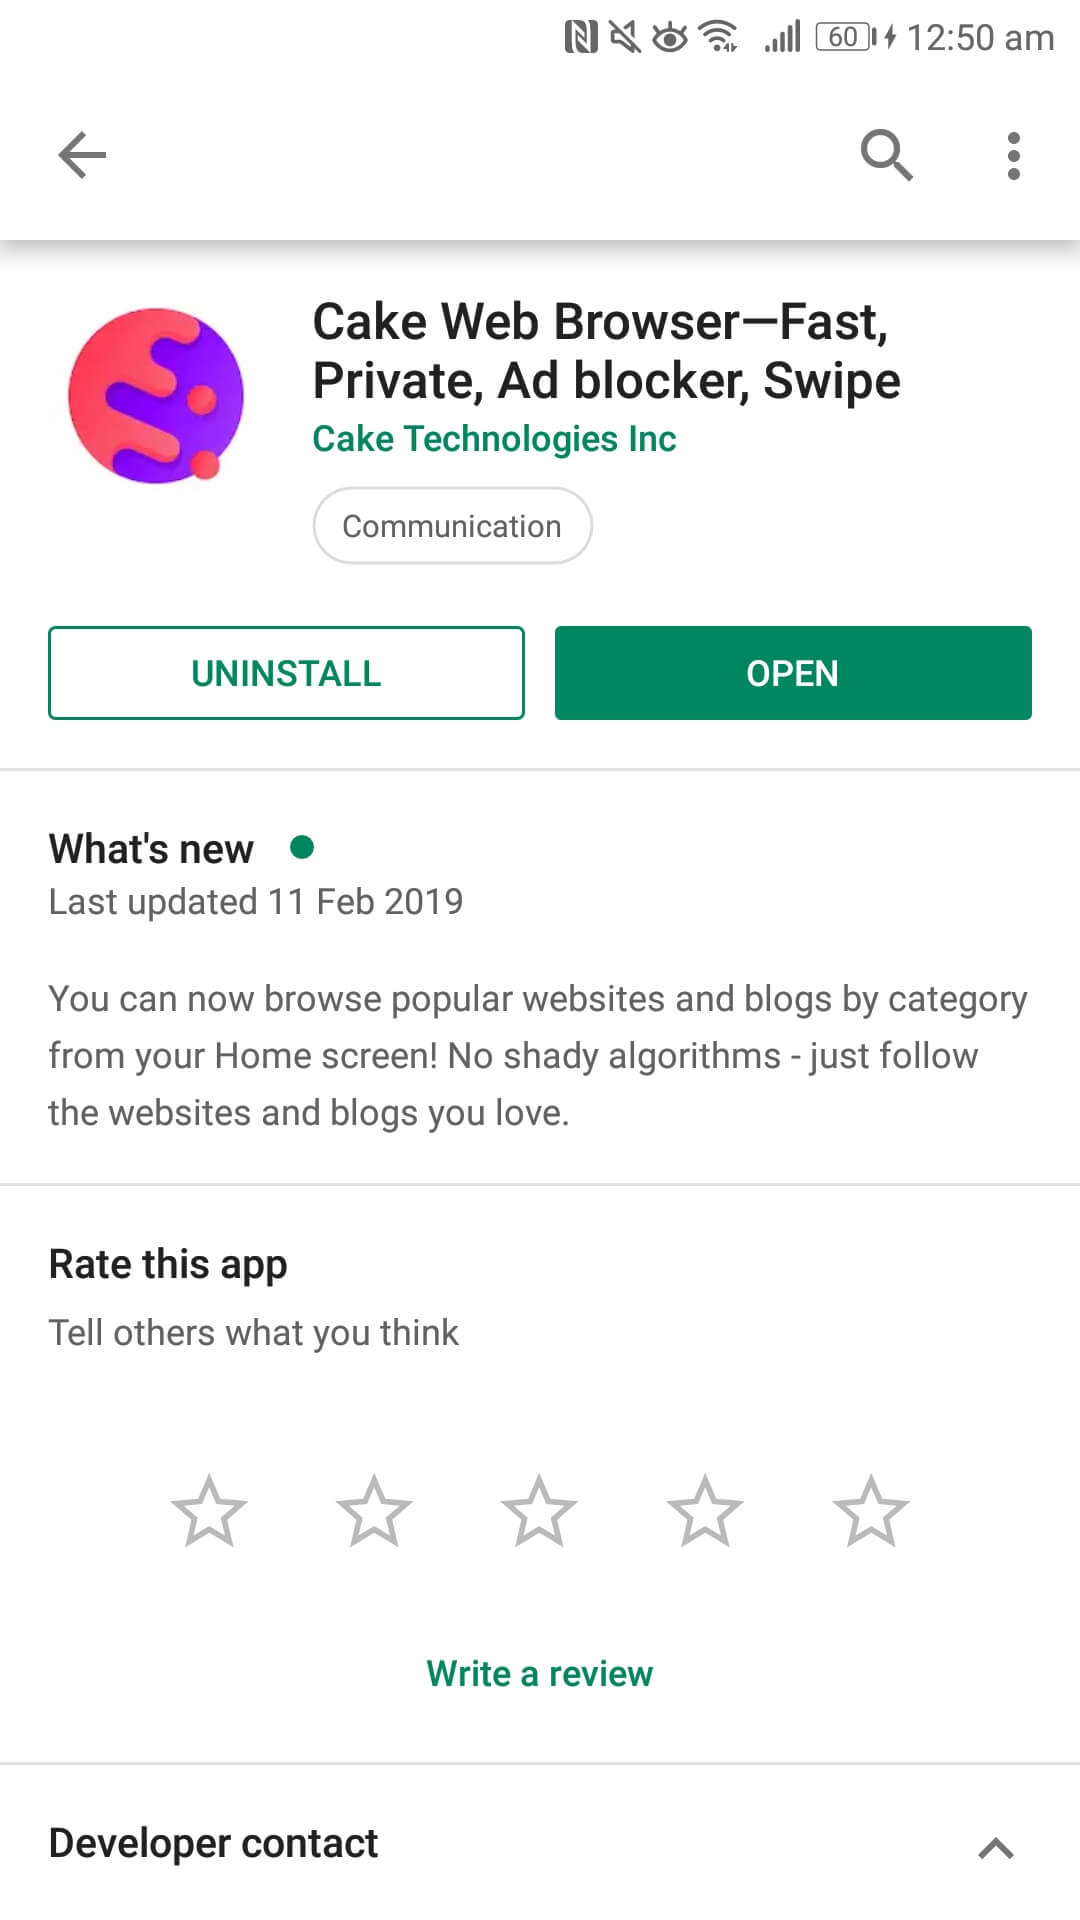 Cake Web Browser—Fast, Private, Ad blocker, Swipe Cake Technologies Inc